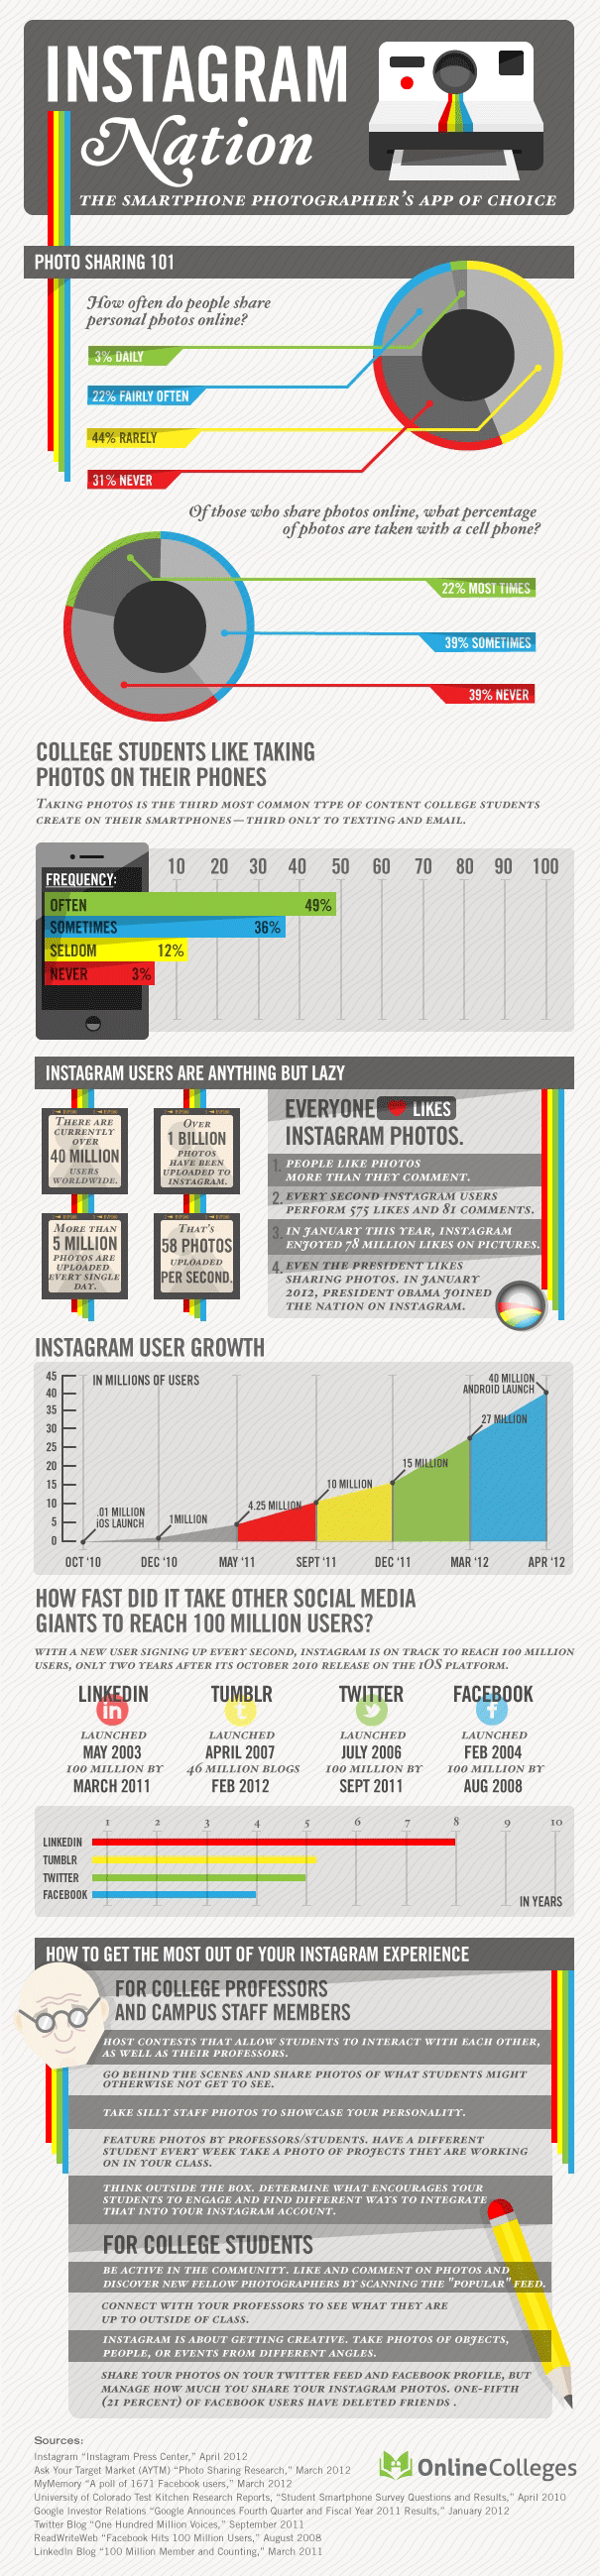 instagram-nation-infographic